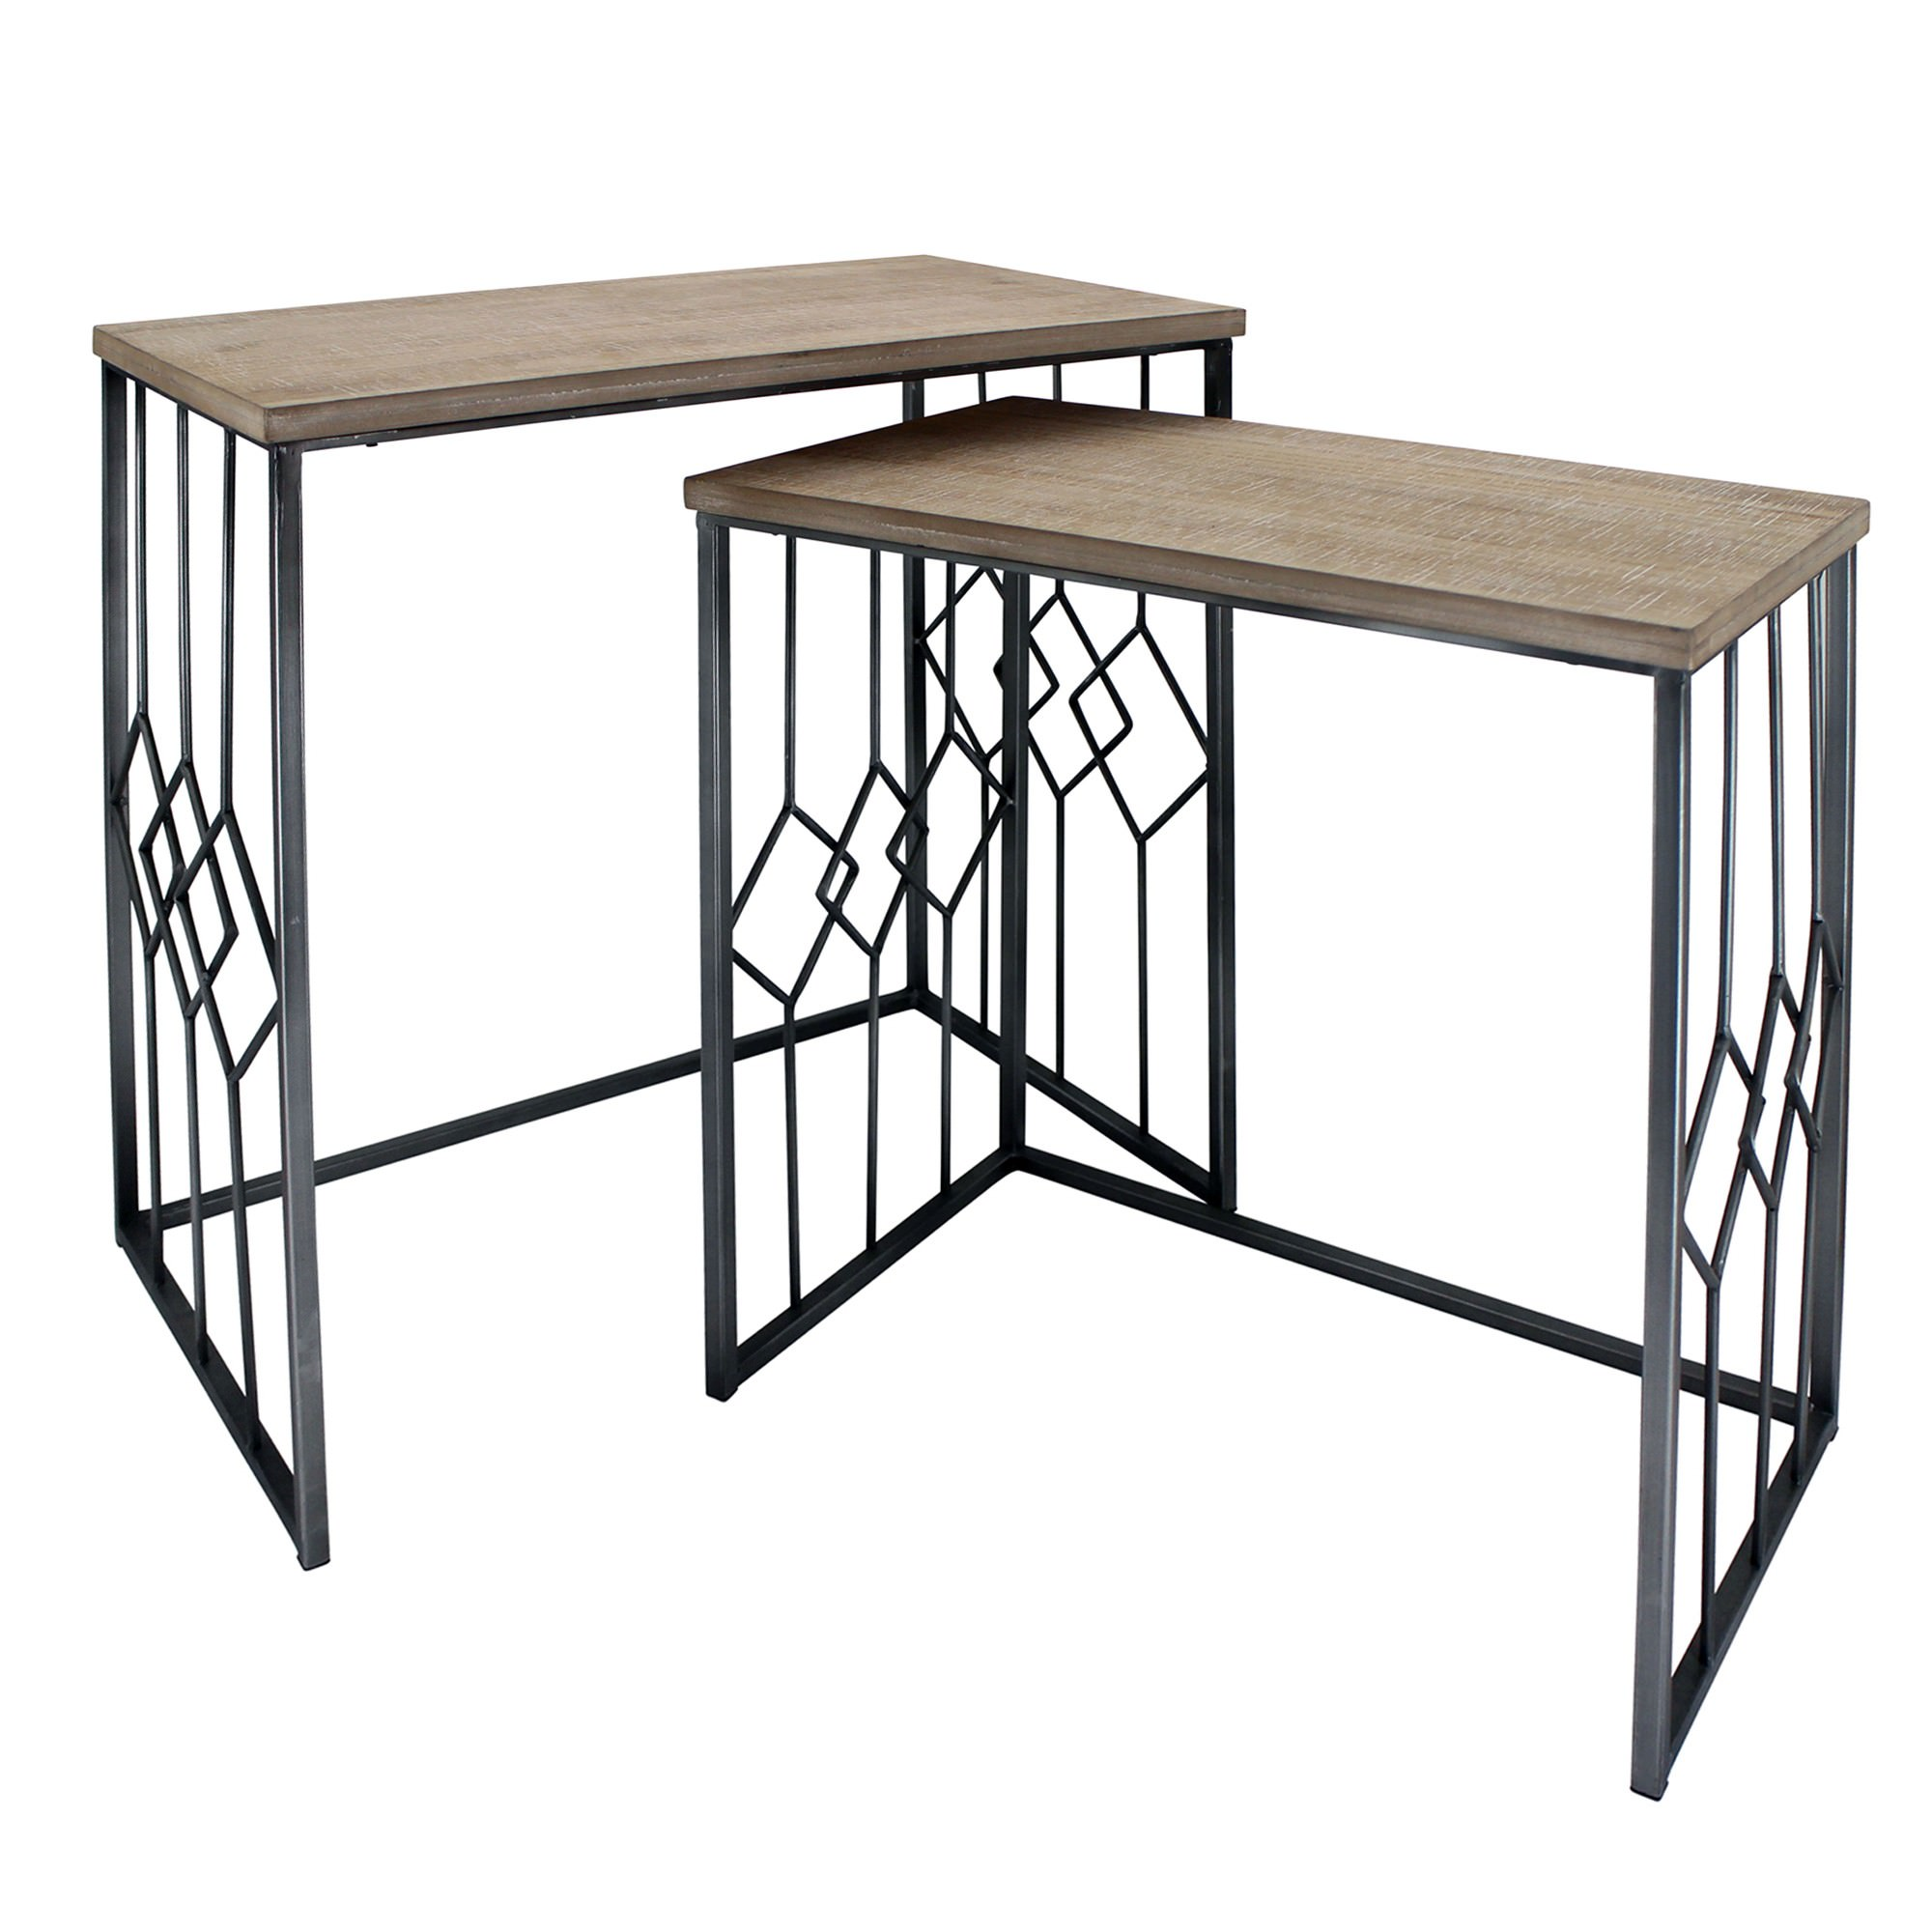 Eros 2 Piece Wood Topped Metal Nesting Table Set